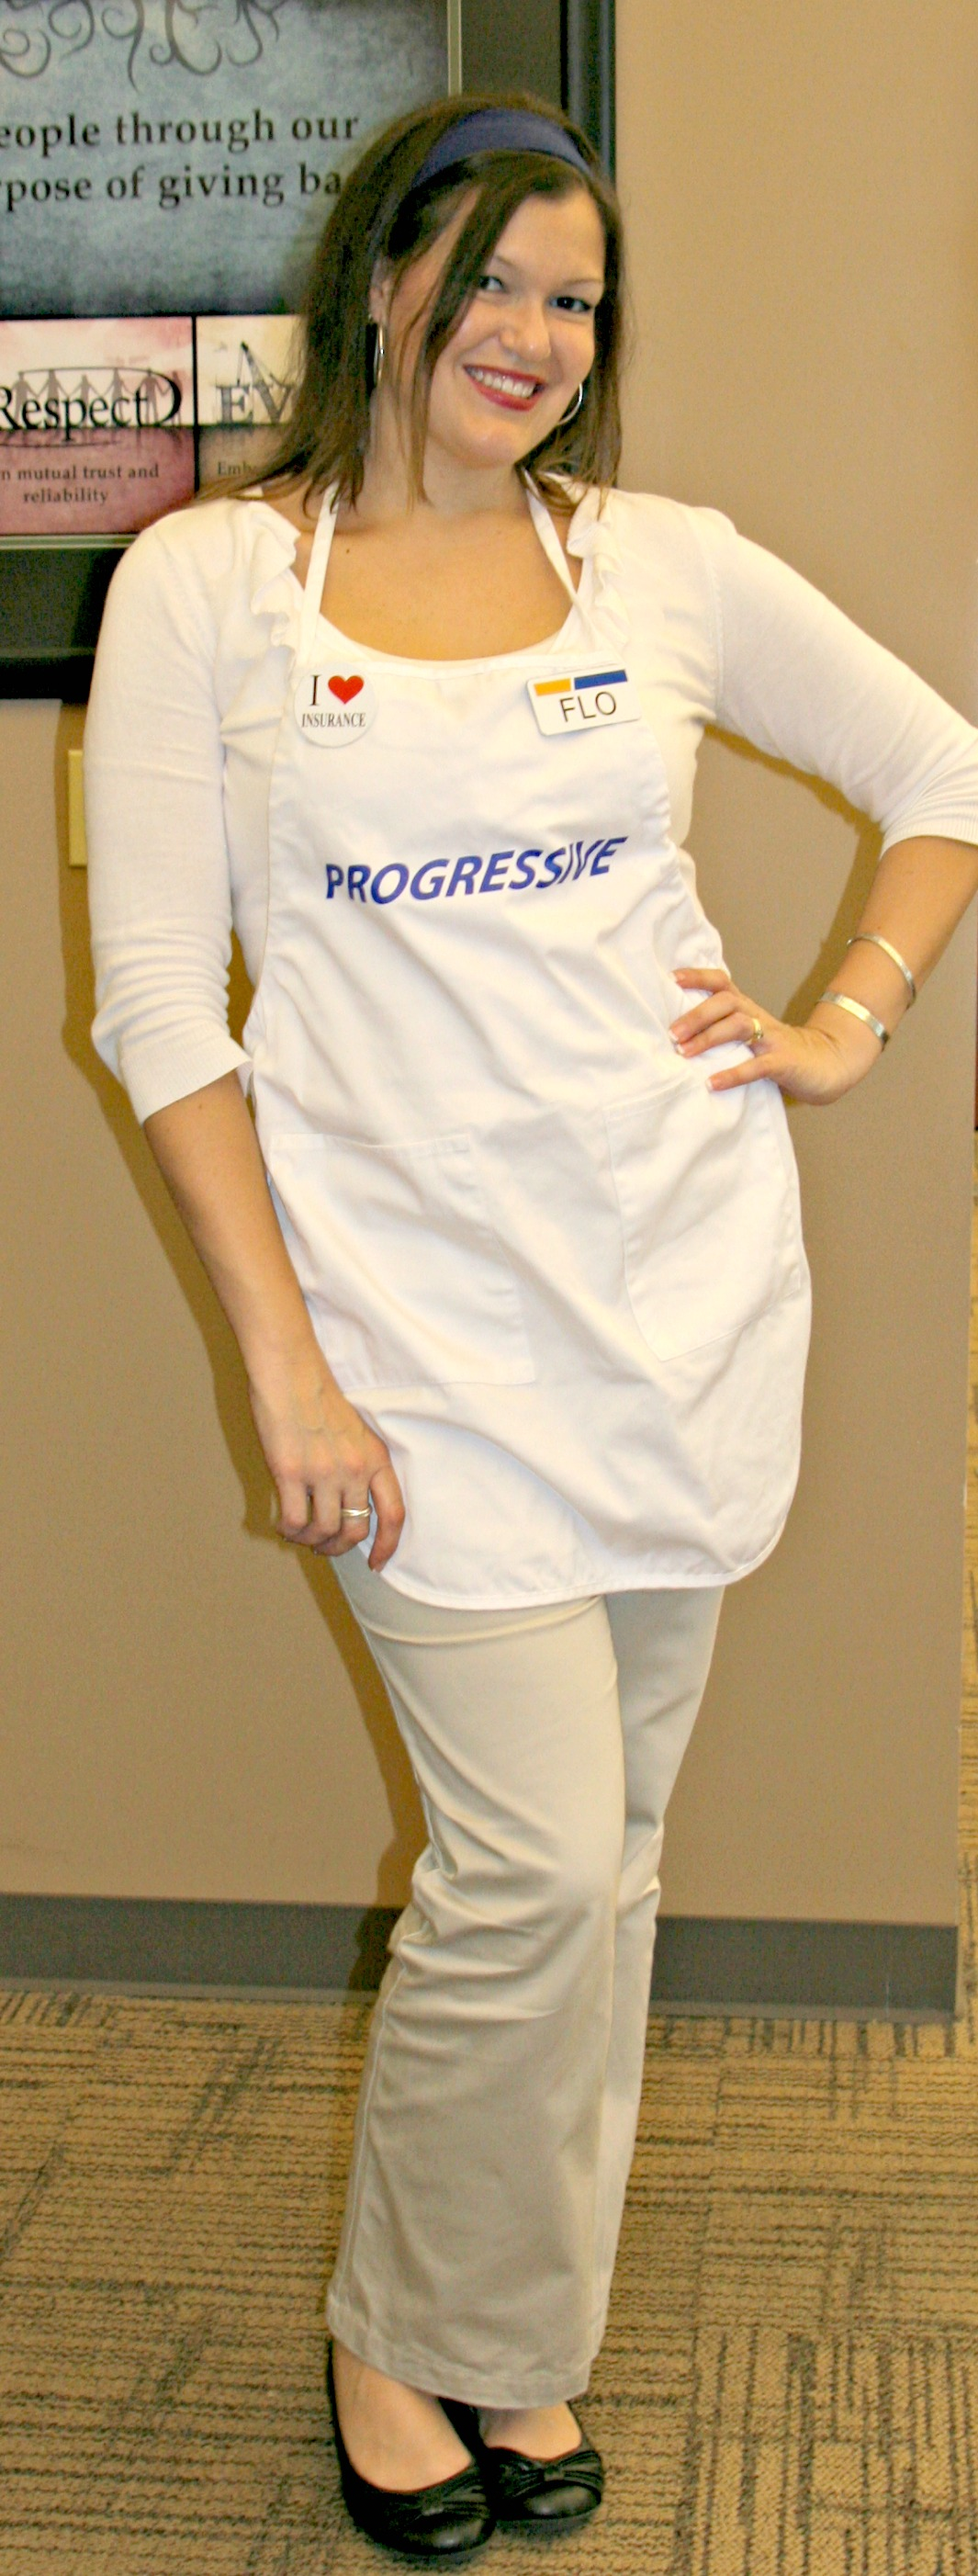 Flo from Progressive Halloween Costume I ABG Capital Blog